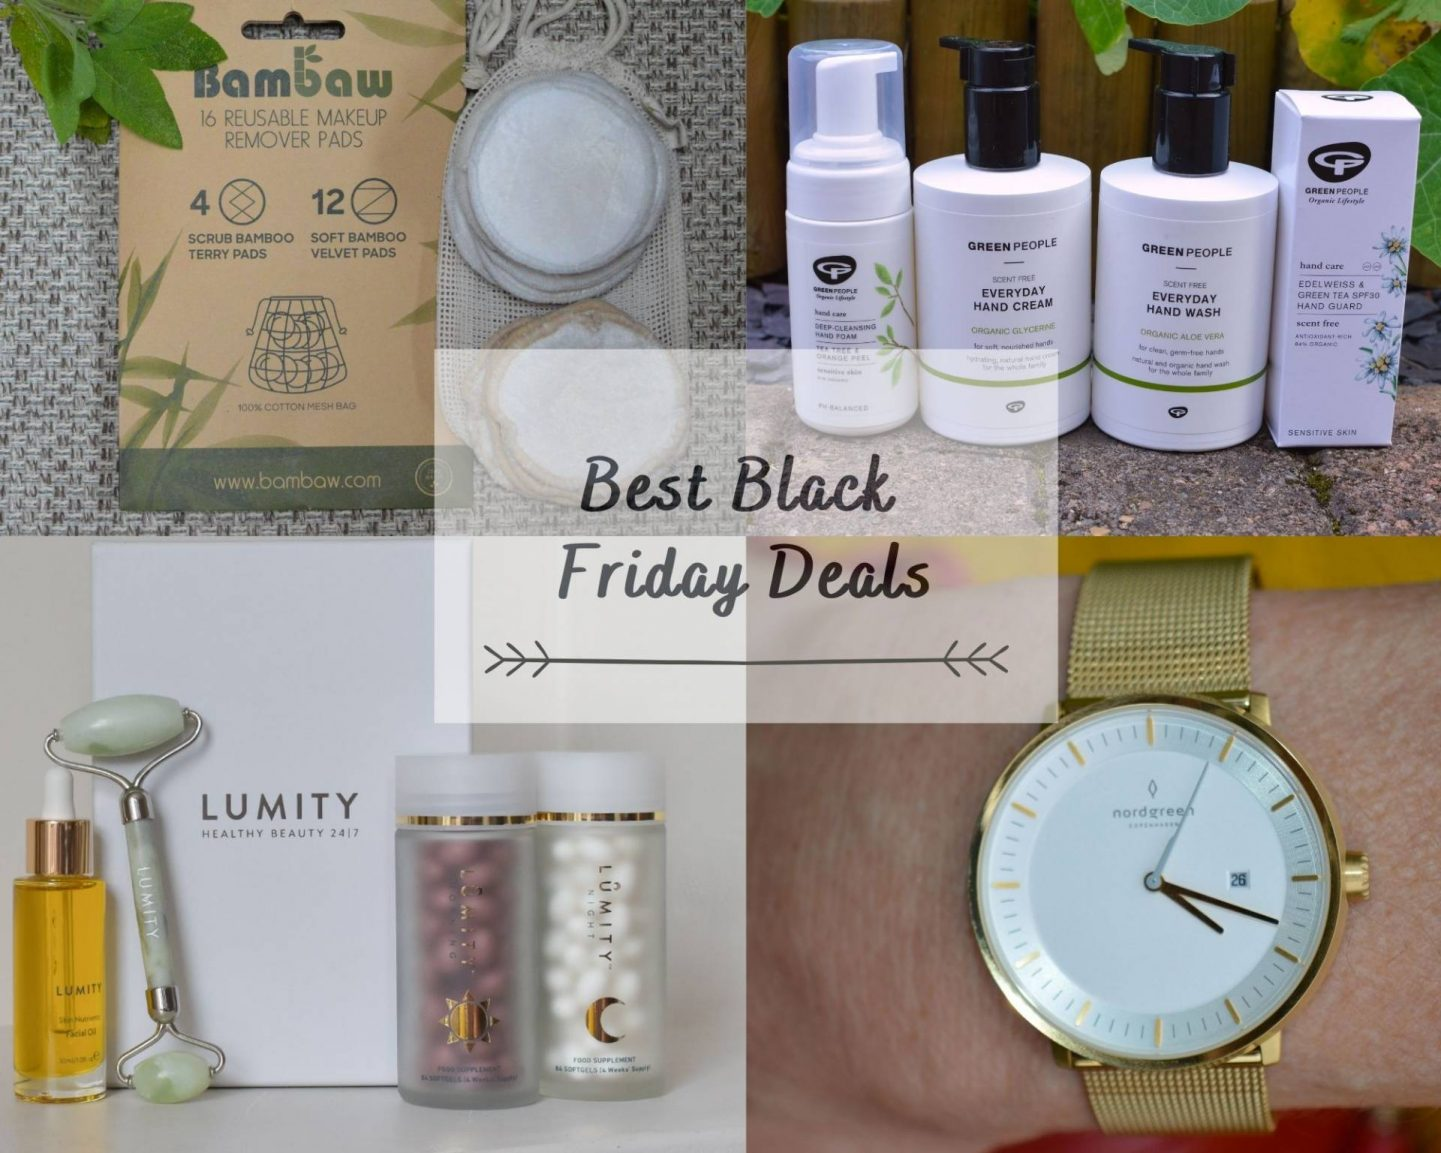 Best Black Friday Deals collage, Lumity, Freen People handcare, Bambaw makeup remover pads, Nordgreen Philosopher gold watch